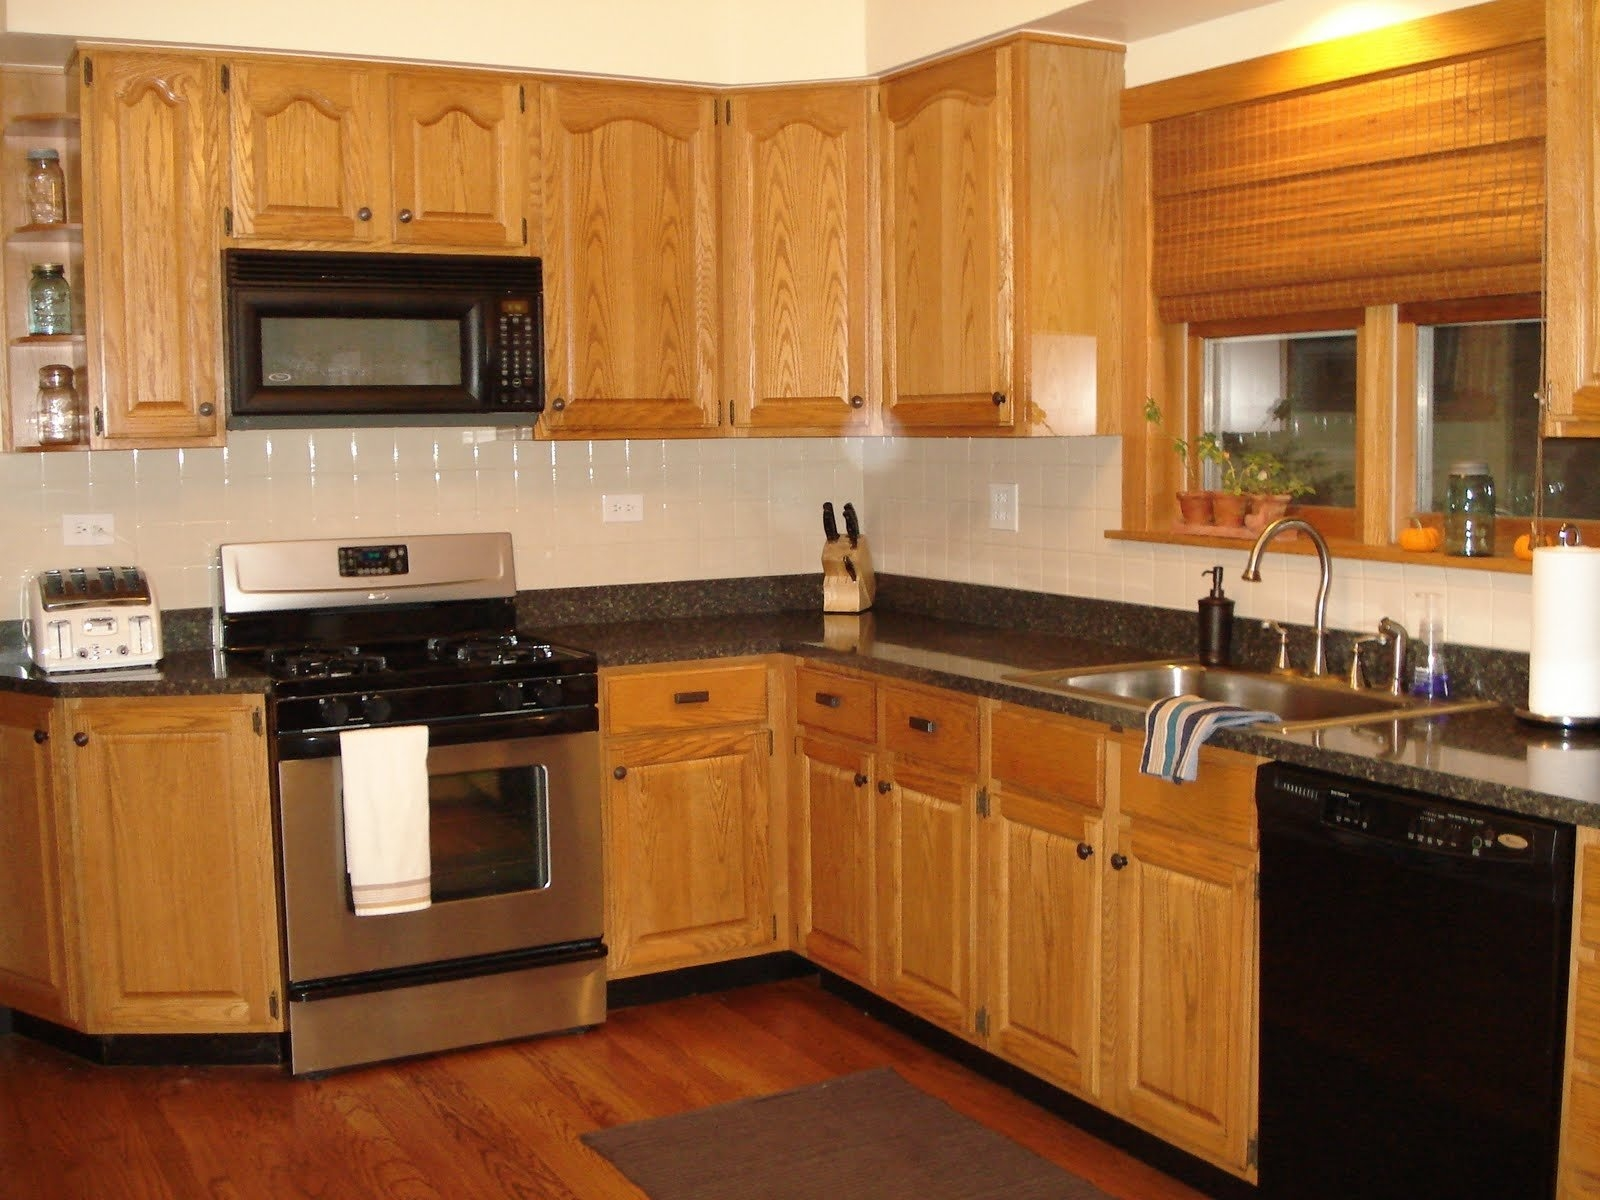 Permalink to Kitchen Flooring With Golden Oak Cabinets